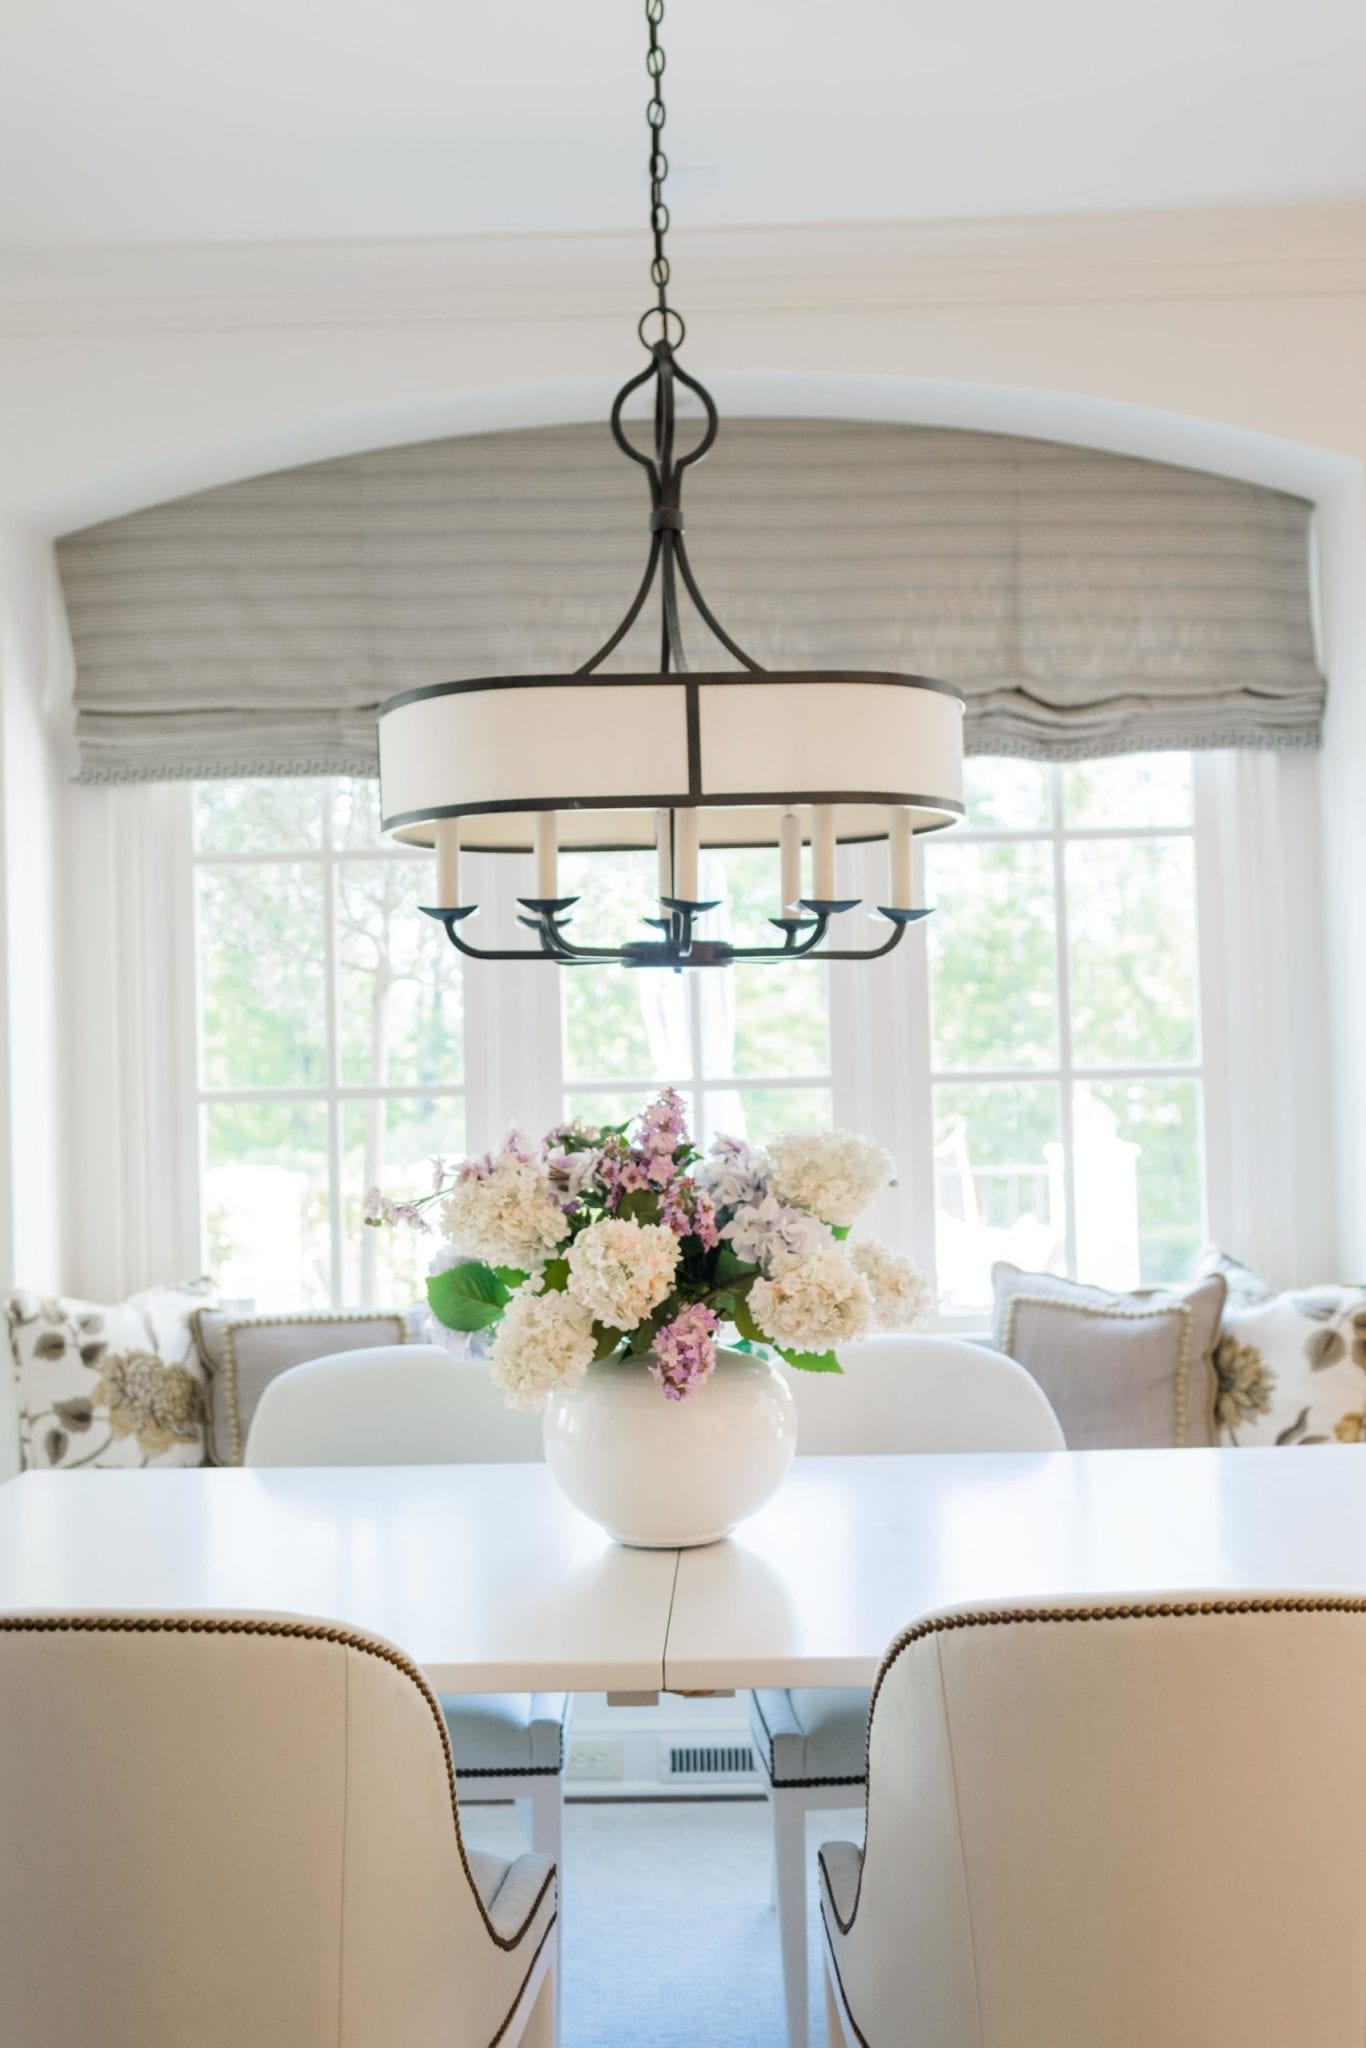 How to create an arrangement with hydrangea